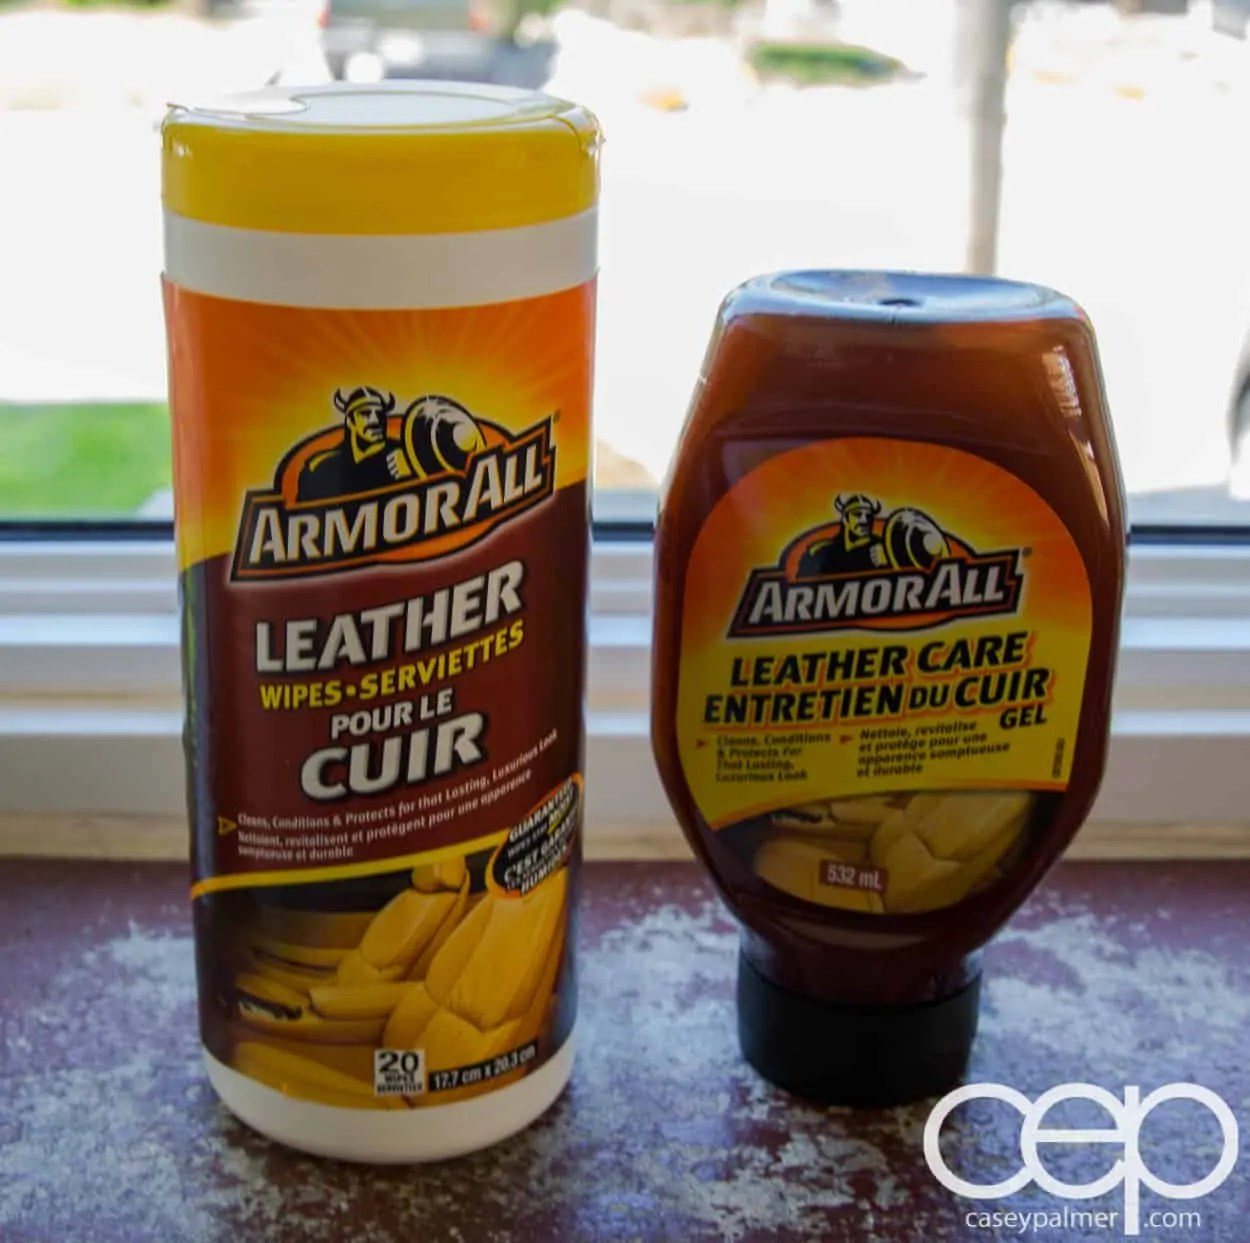 Armor All Spring Cleaning Post — Armor All Products — Armor All Leather Care